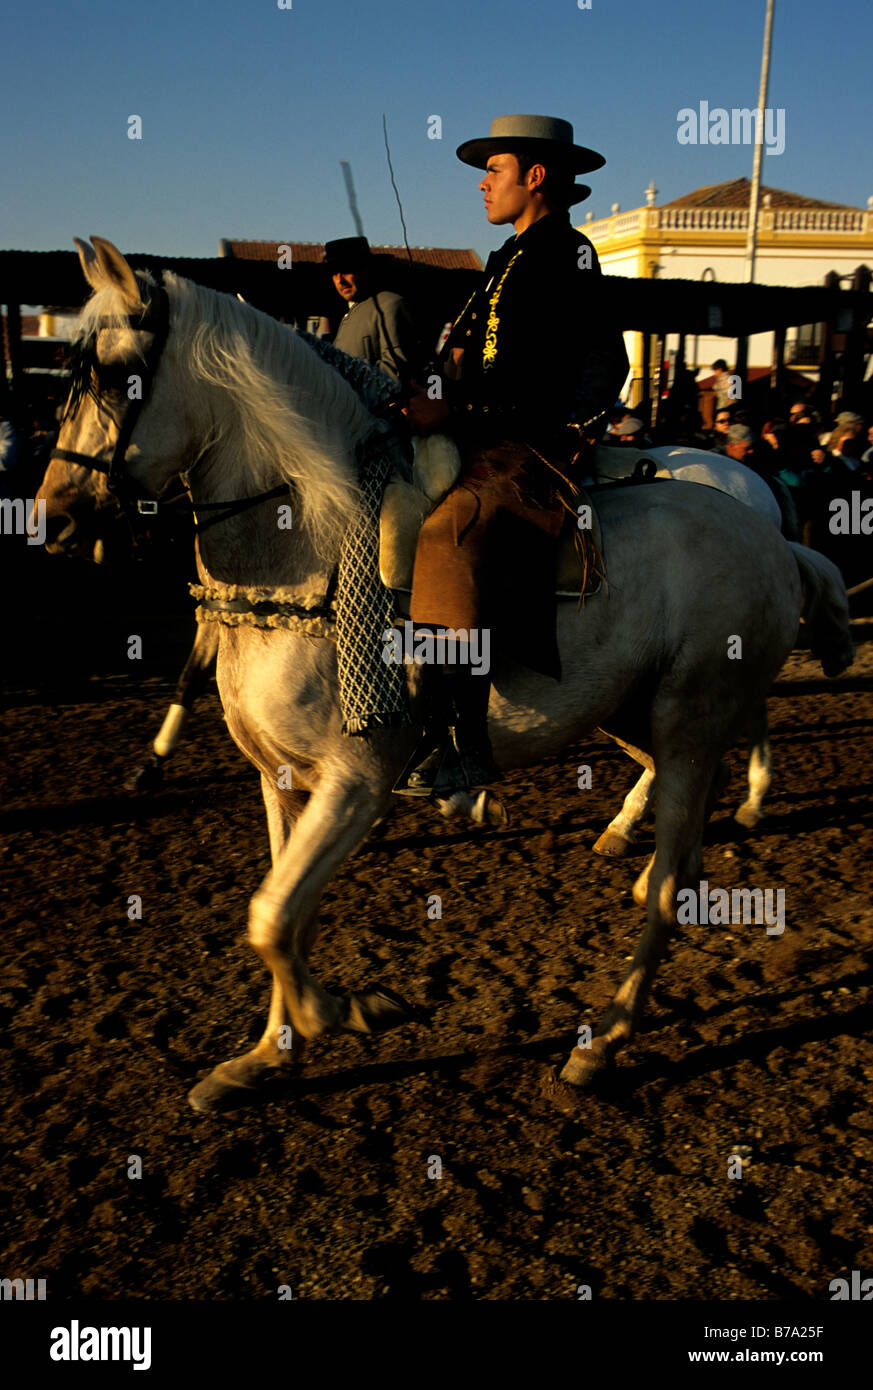 A horseman astride a Lusitano during the annual Golegã horse festival in Portugal - Stock Image